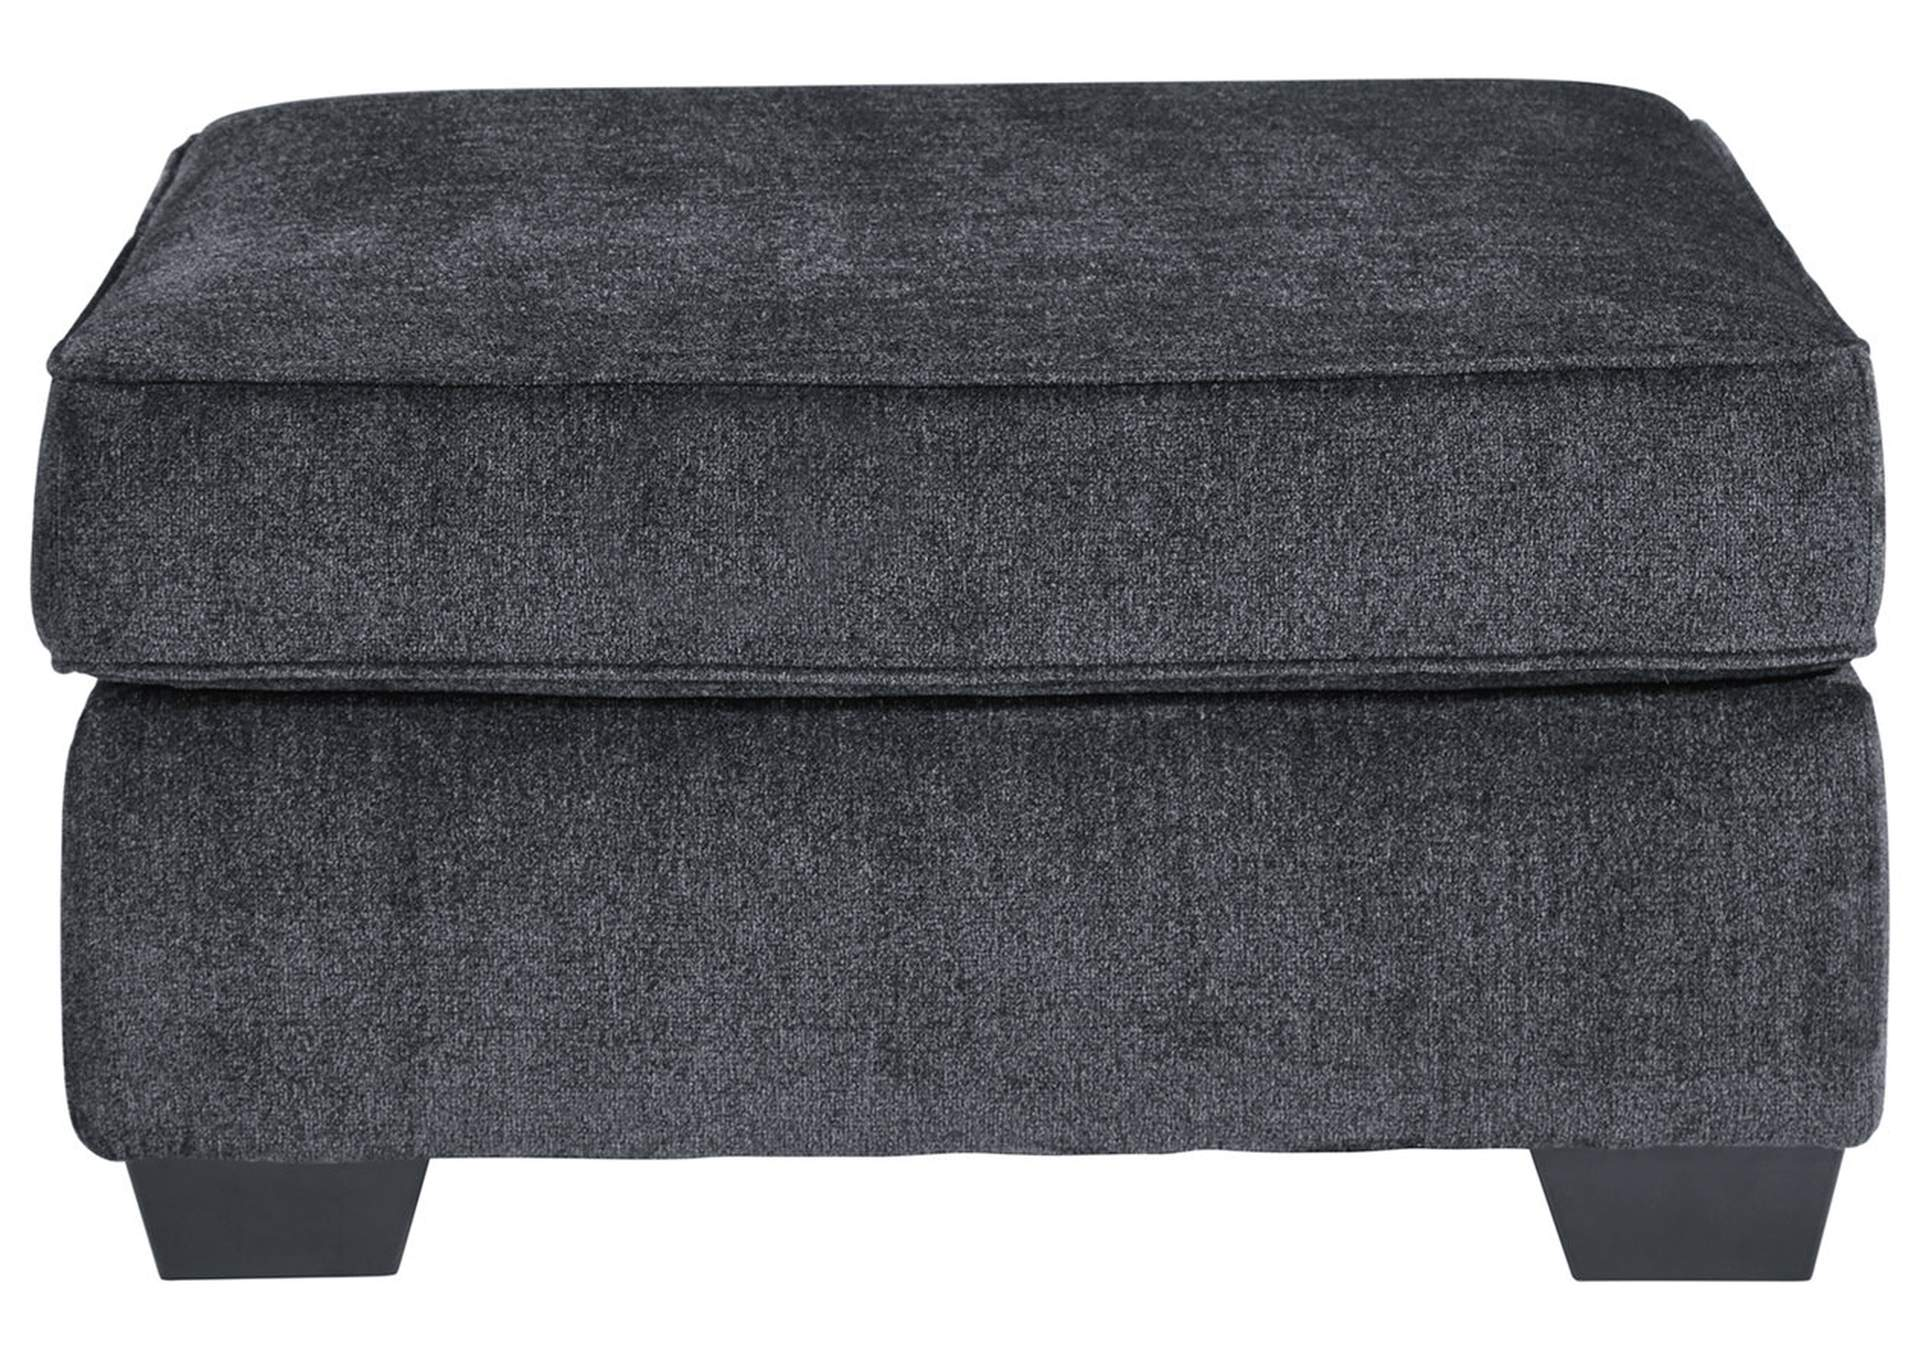 Altari Slate Oversized Accent Ottoman,Signature Design By Ashley